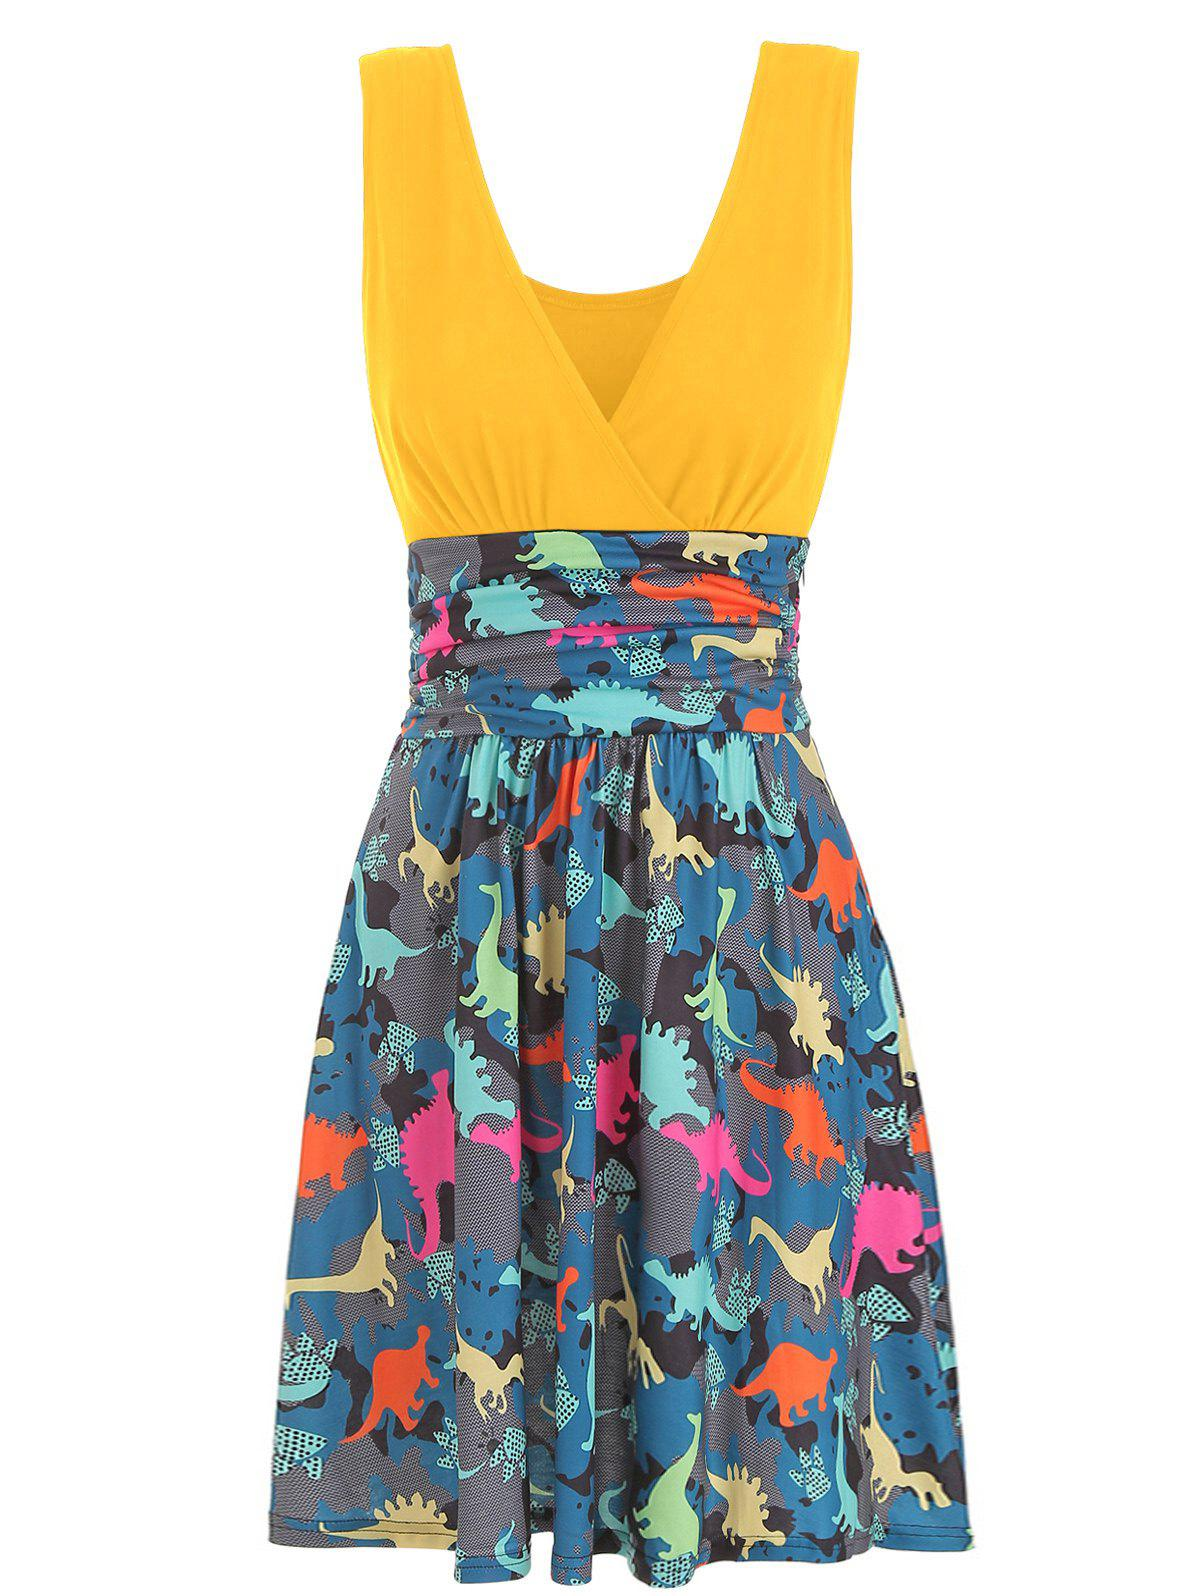 V Neck Ruched Dinosaur Print Sleeveless Dress, Yellow